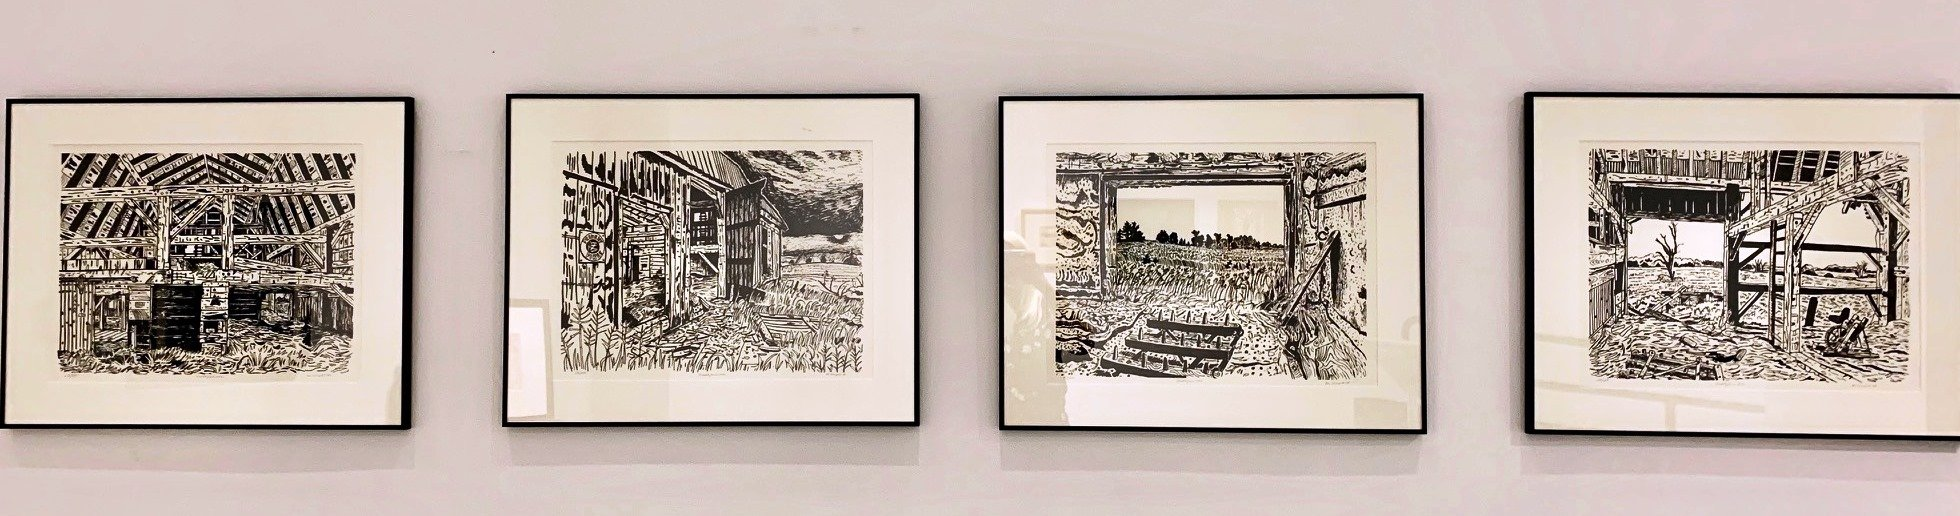 Clark McDougall, Tisdale Farm Series, original serigraphs signed by Clark McDougall. 1978  $325 each pick only